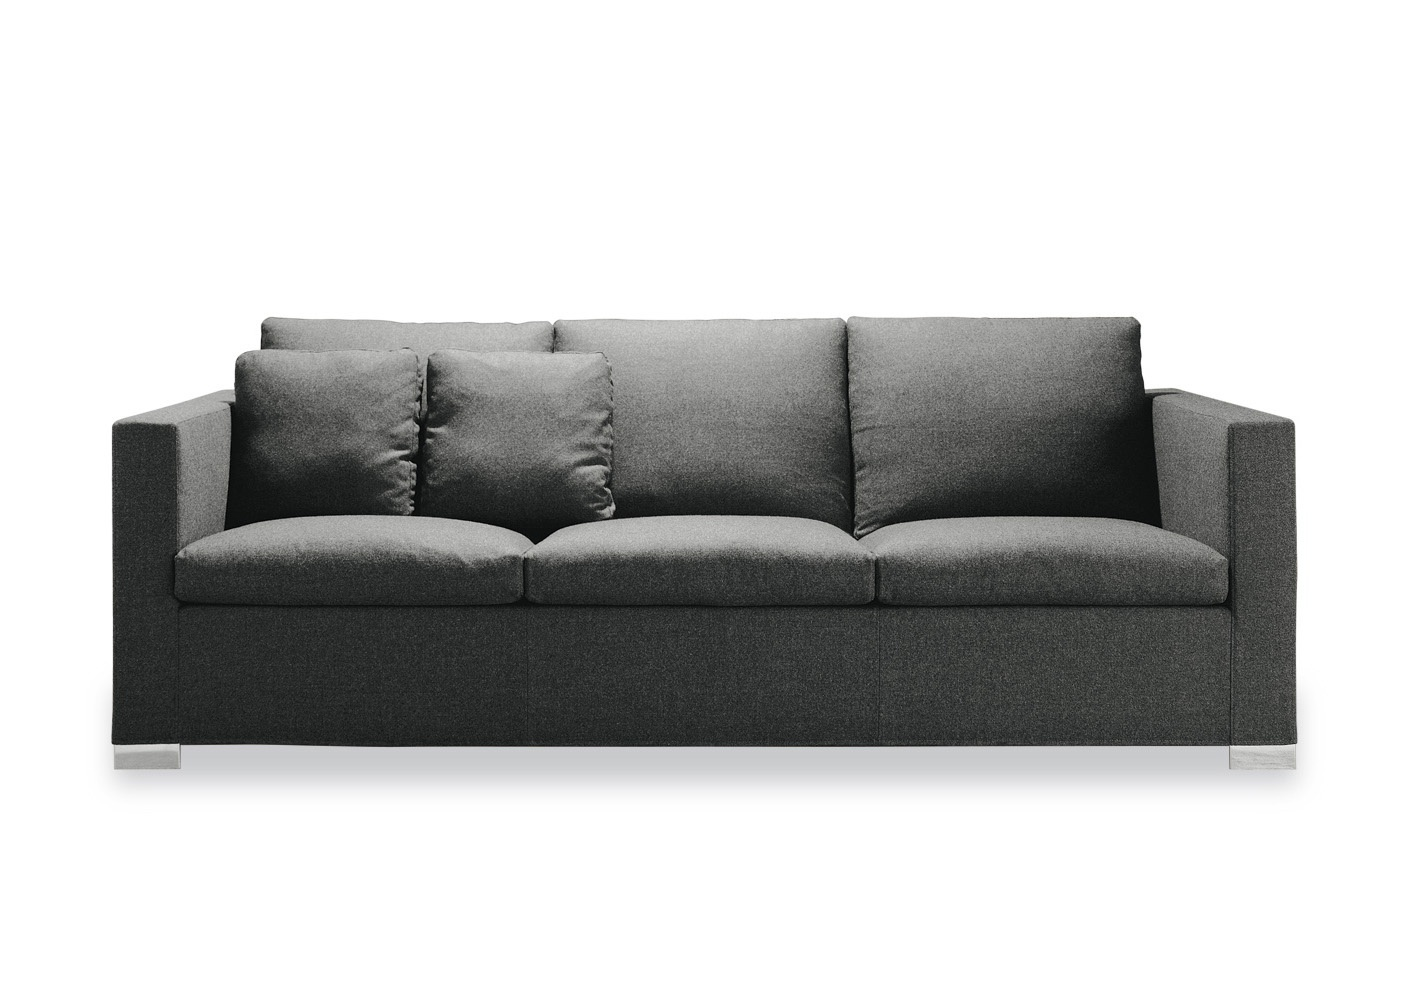 A Sofa To Relax On Deep Suitcase Minotti Luxury Furniture Mr